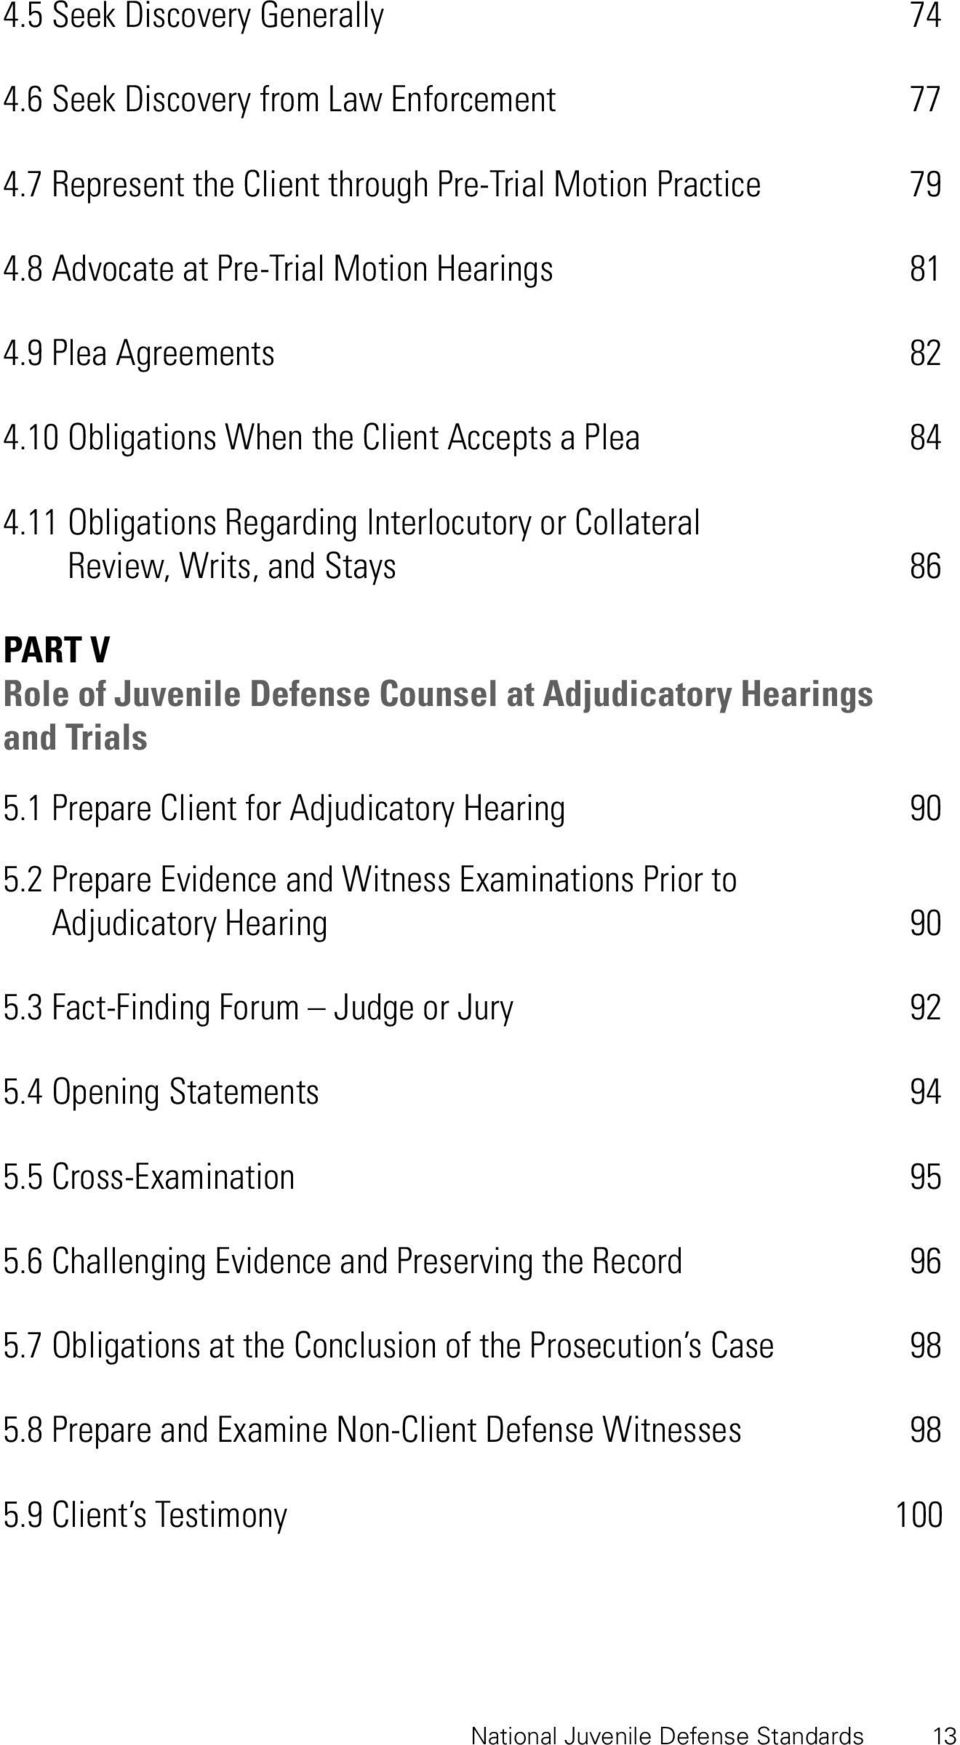 11 Obligations Regarding Interlocutory or Collateral Review, Writs, and Stays 86 PART V Role of Juvenile Defense Counsel at Adjudicatory Hearings and Trials 5.